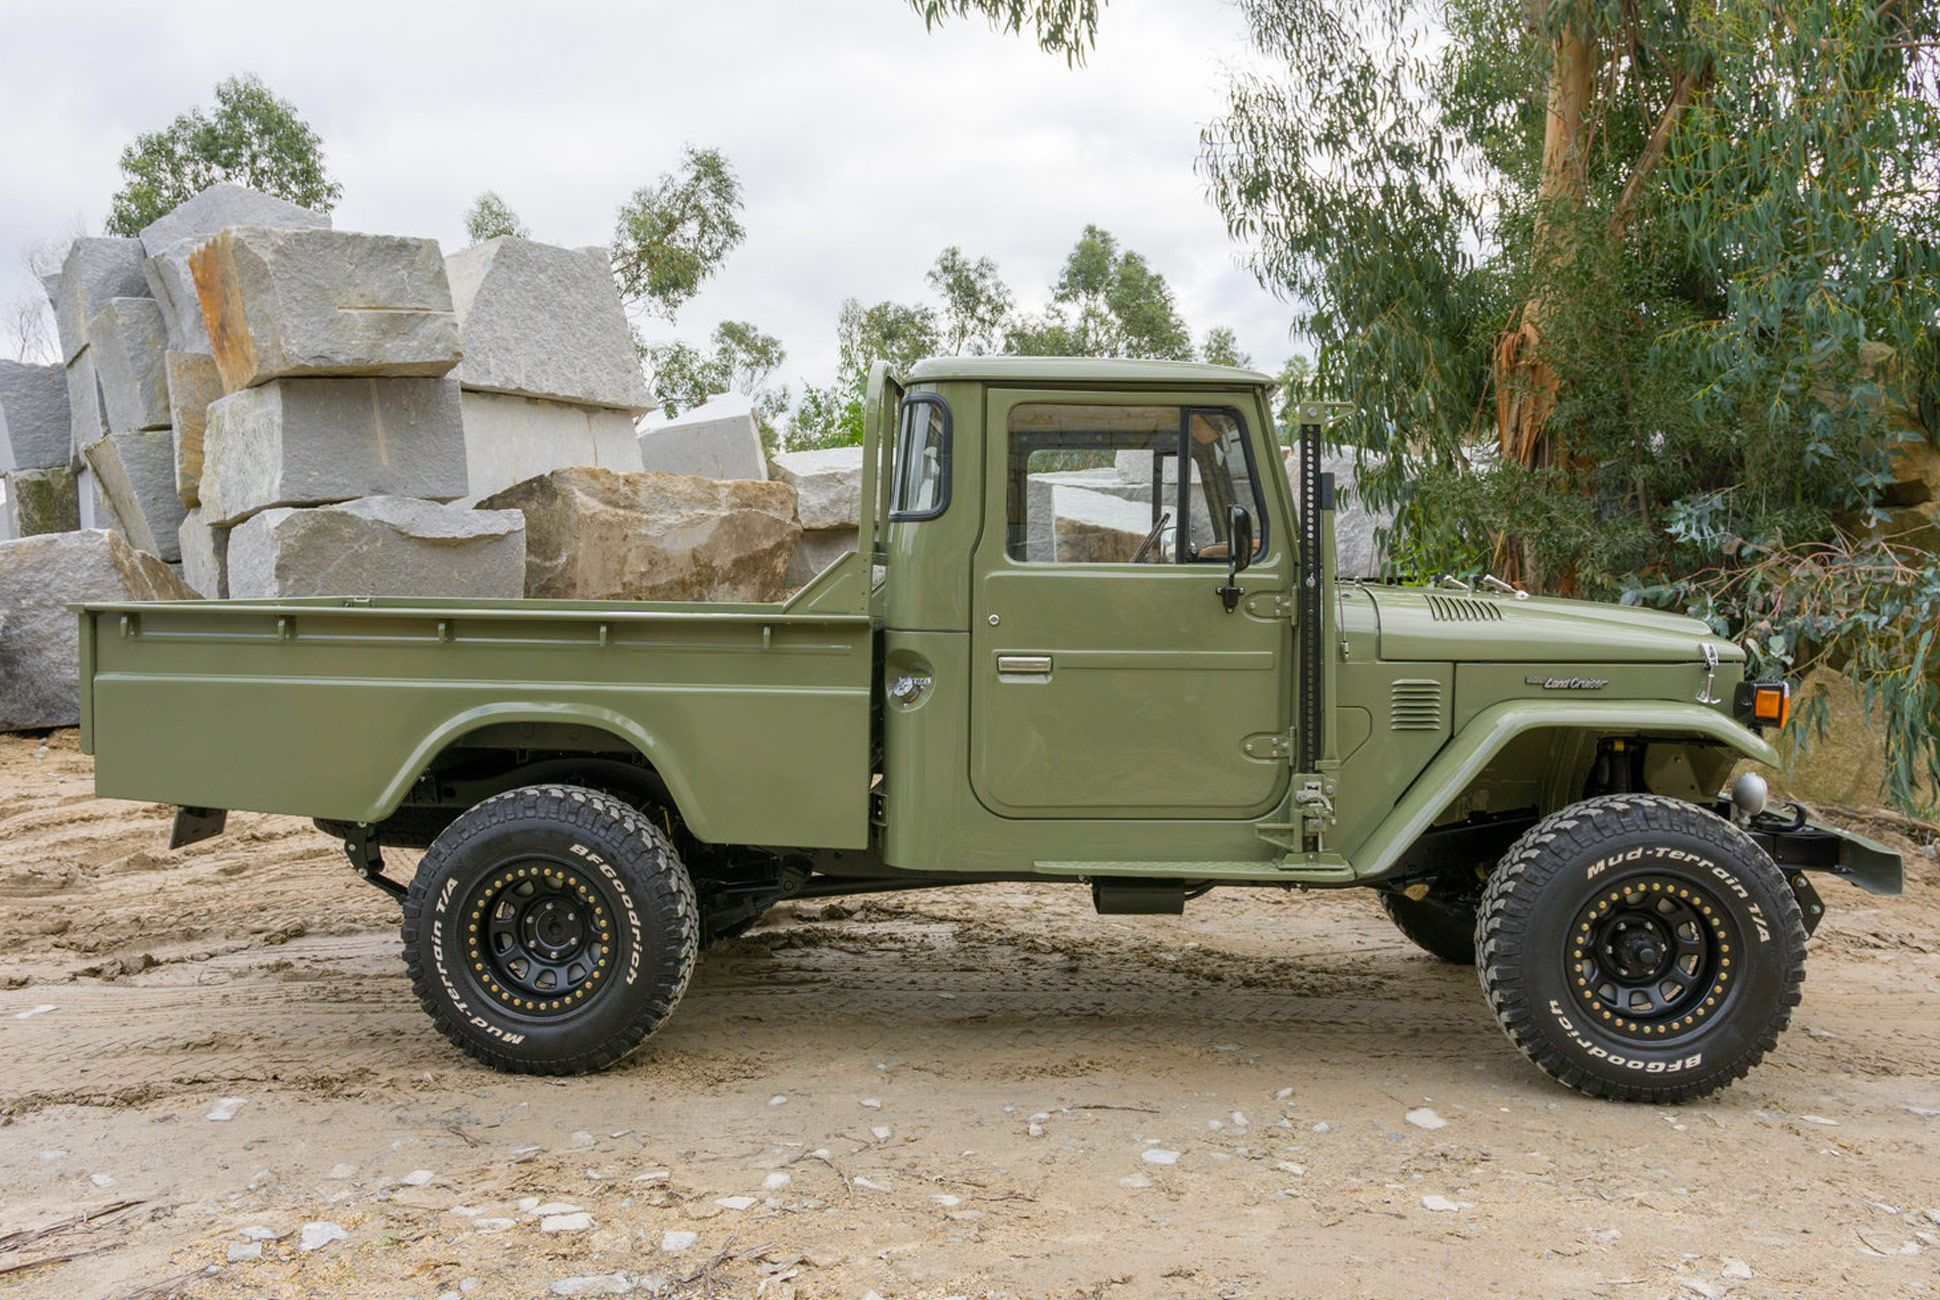 Overland-Pickup-Toyota-gear-patrol-8